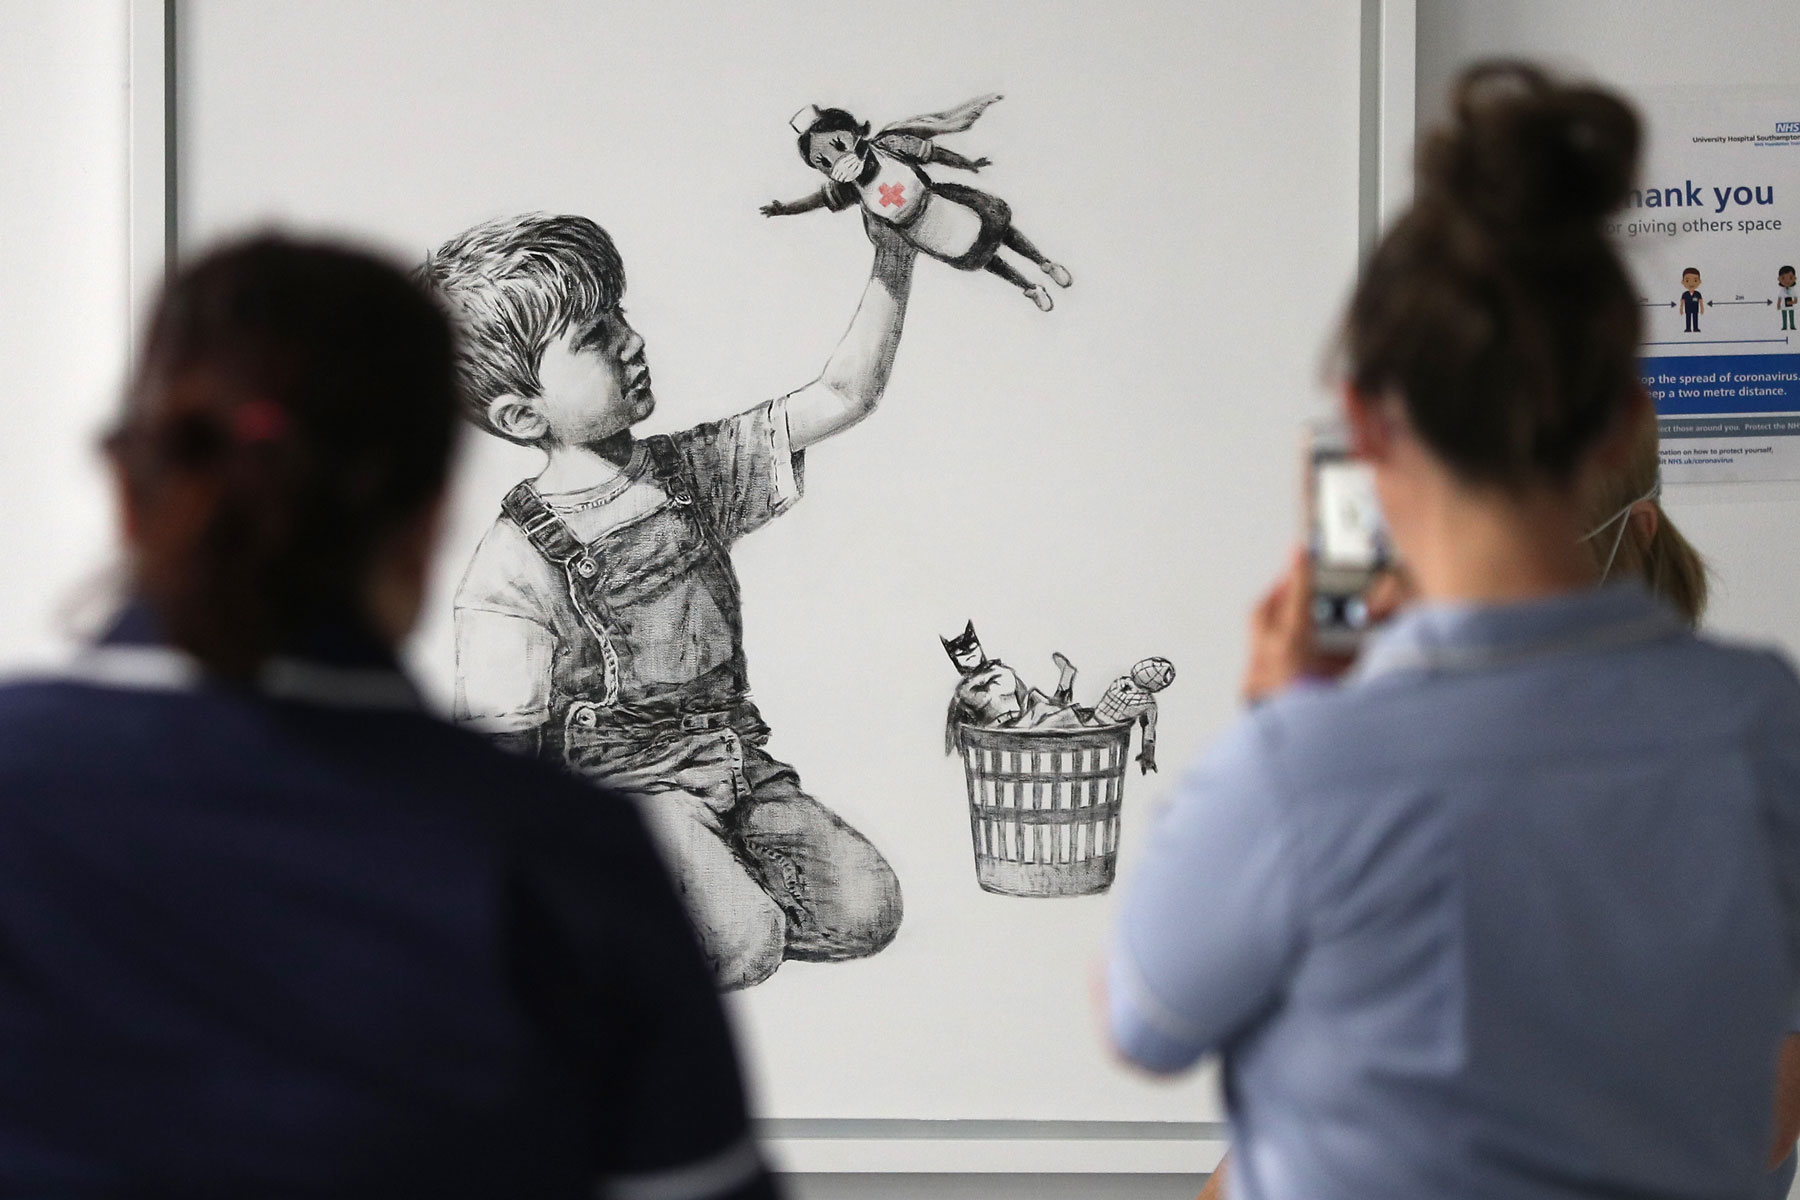 nurses view Banksy's 'Game Changer' on display at a UK hospital